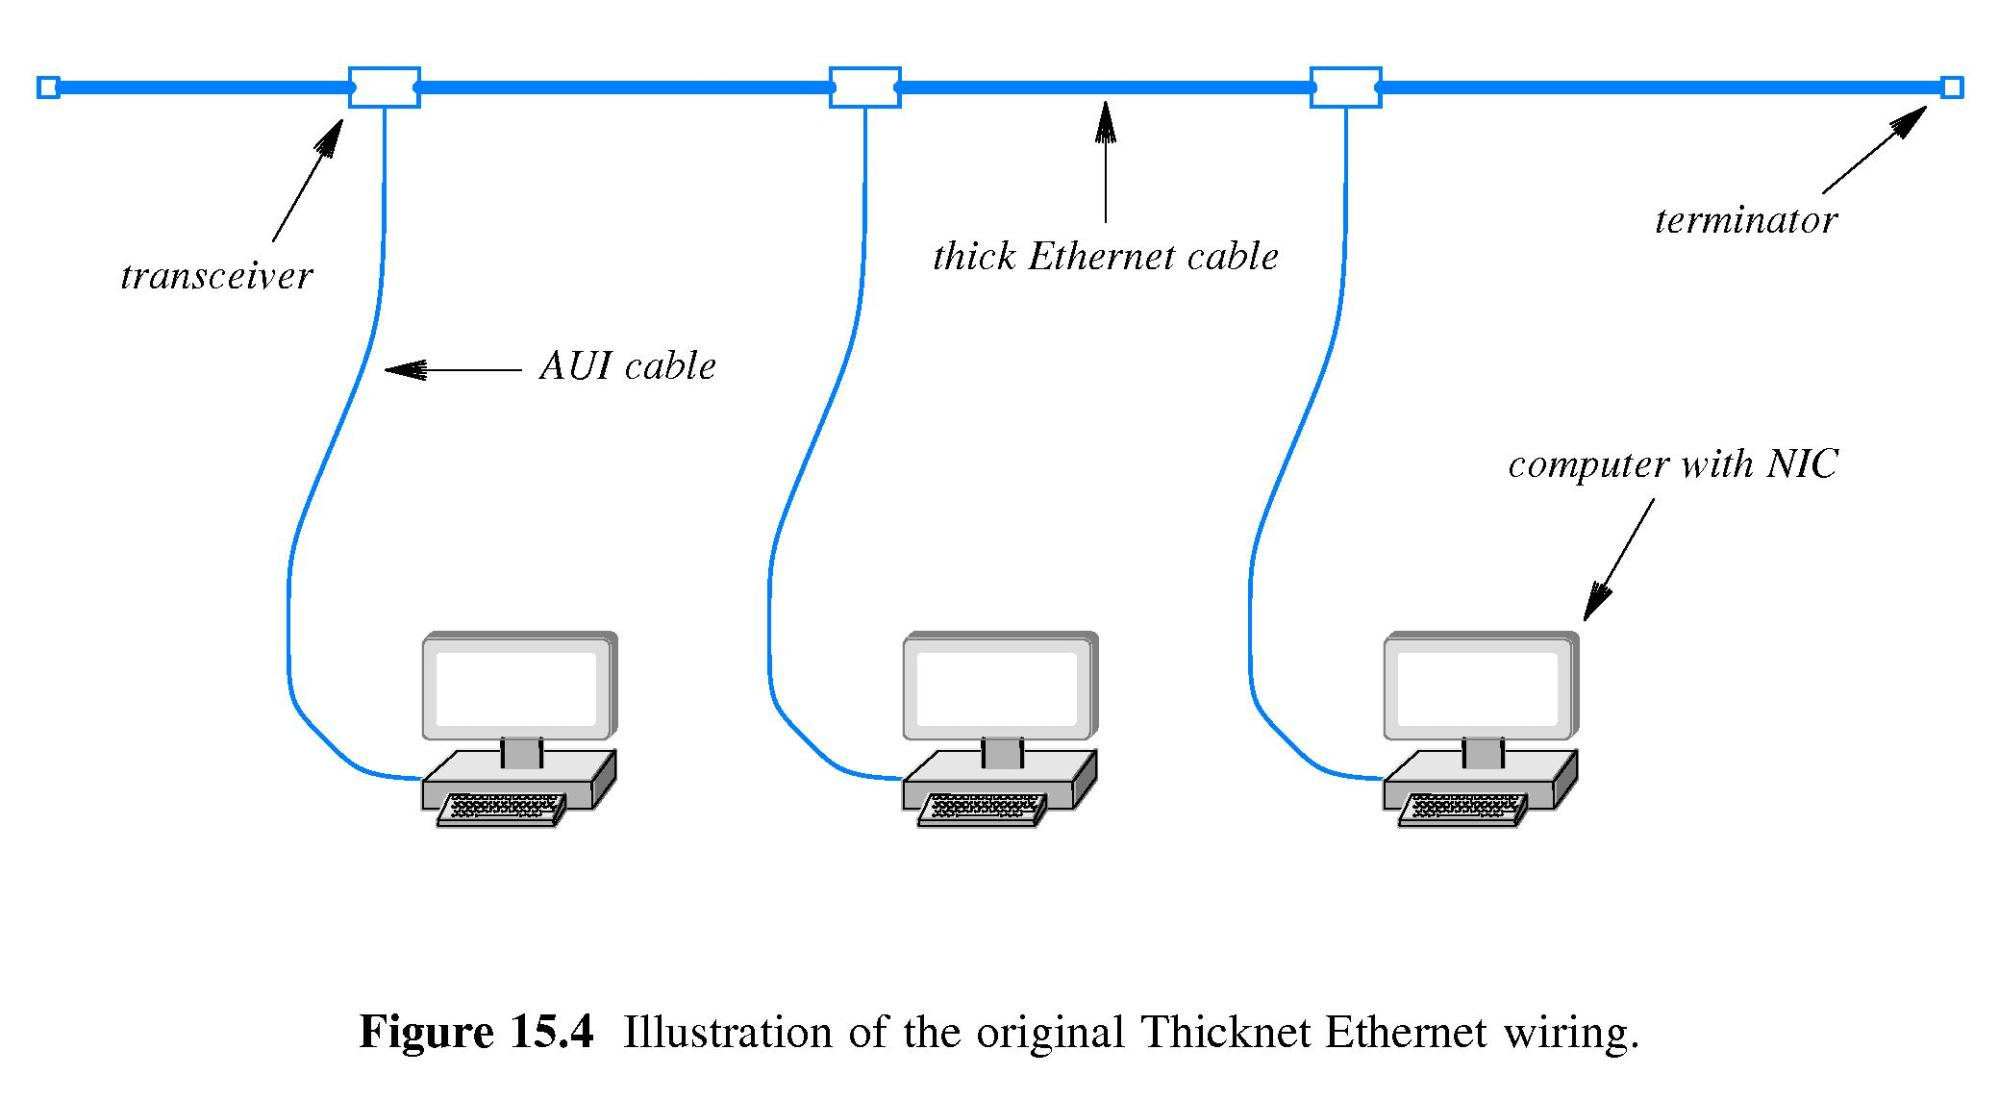 hight resolution of main cable and transceivers were usually remote from the computers perhaps running along above a ceiling or beneath a floor 15 8 thinnet ethernet wiring